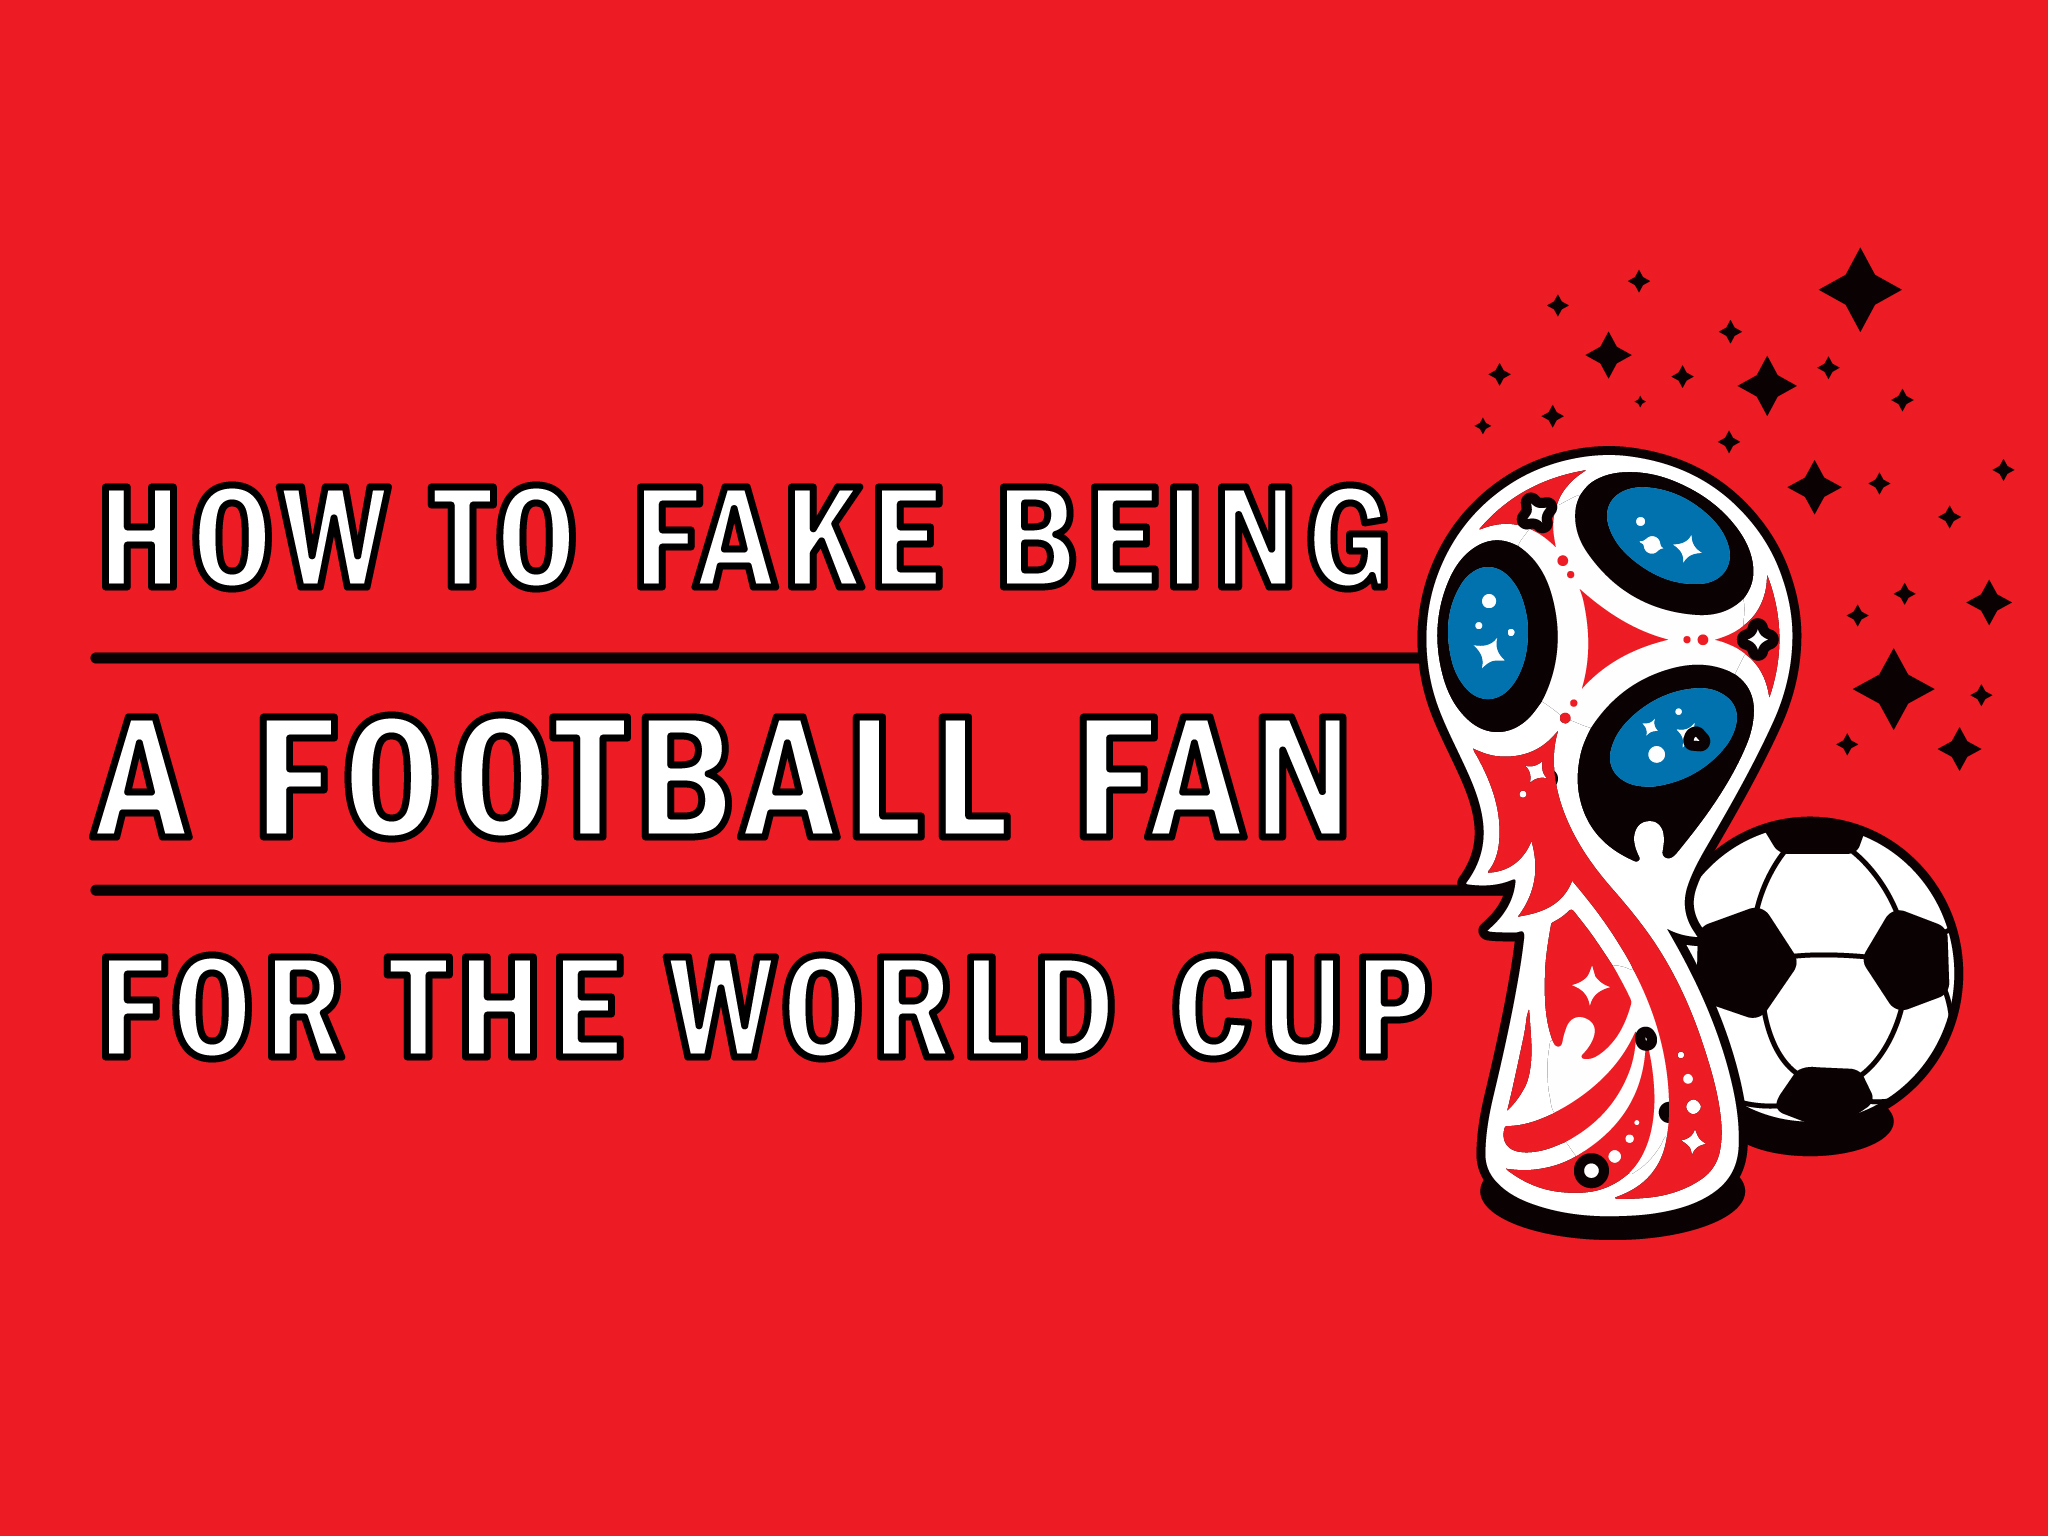 How to fake being a football fan for the World Cup final